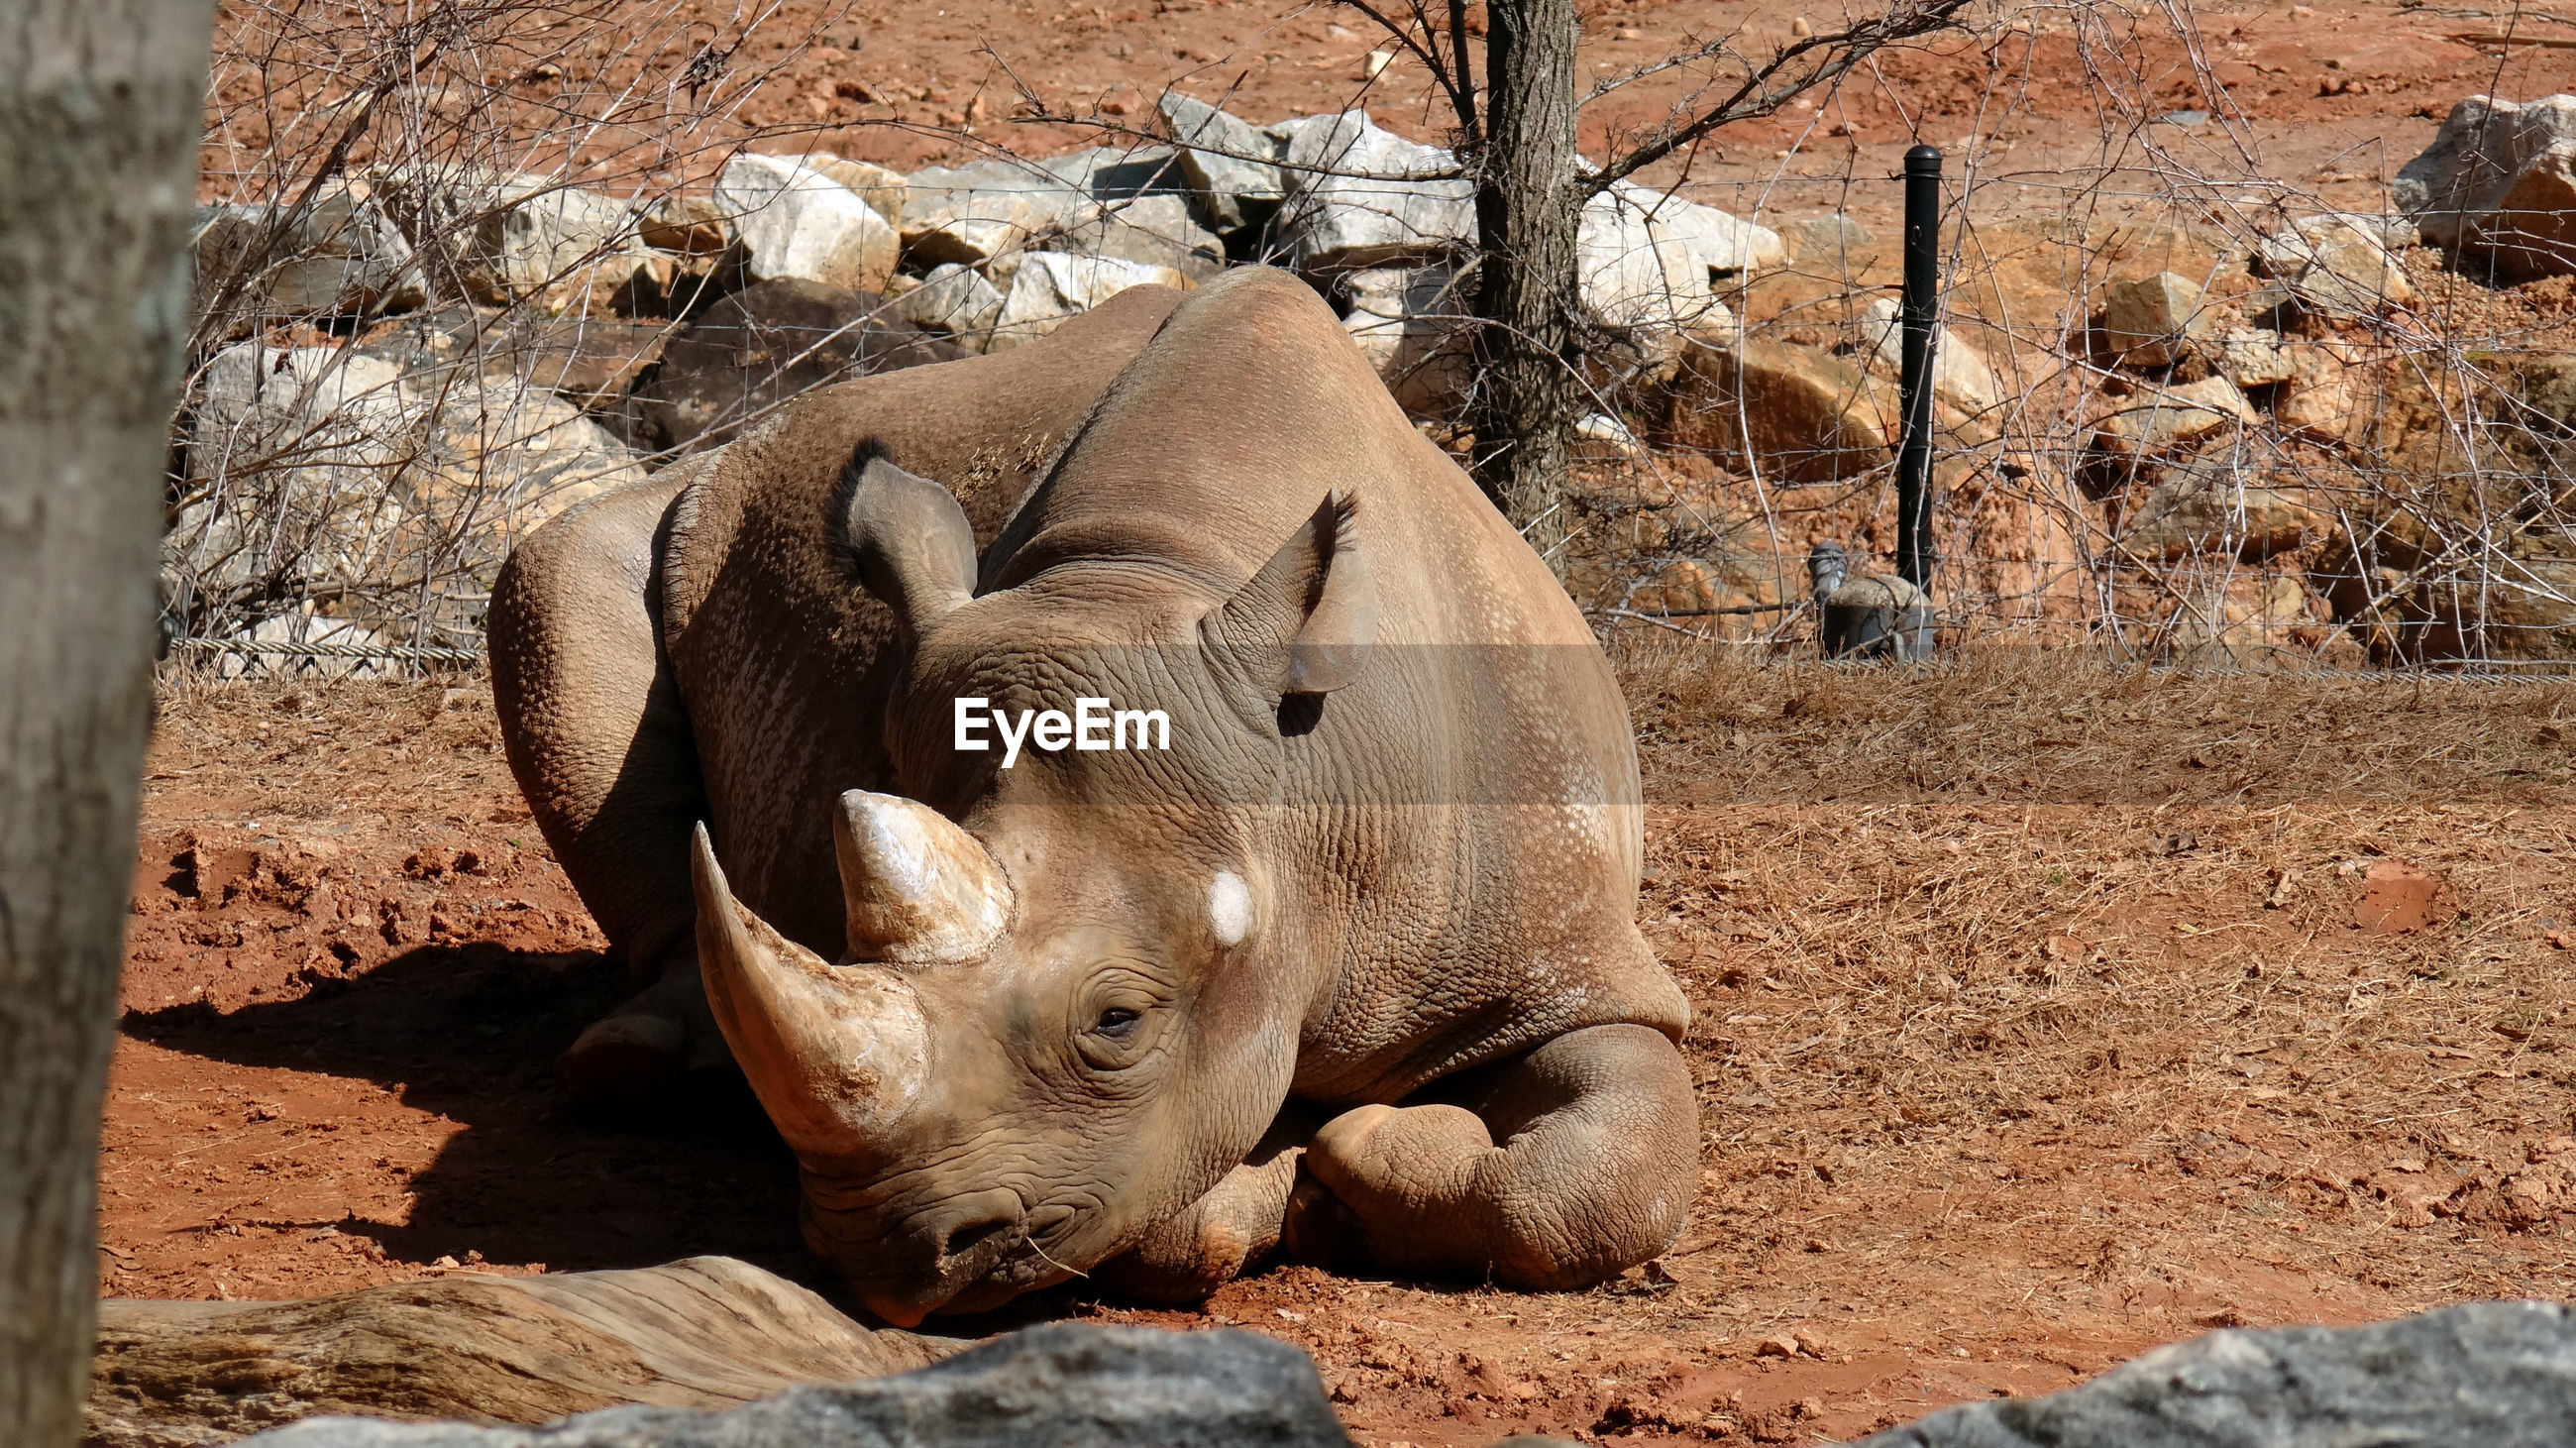 Rhinoceros resting on field by fence at zoo